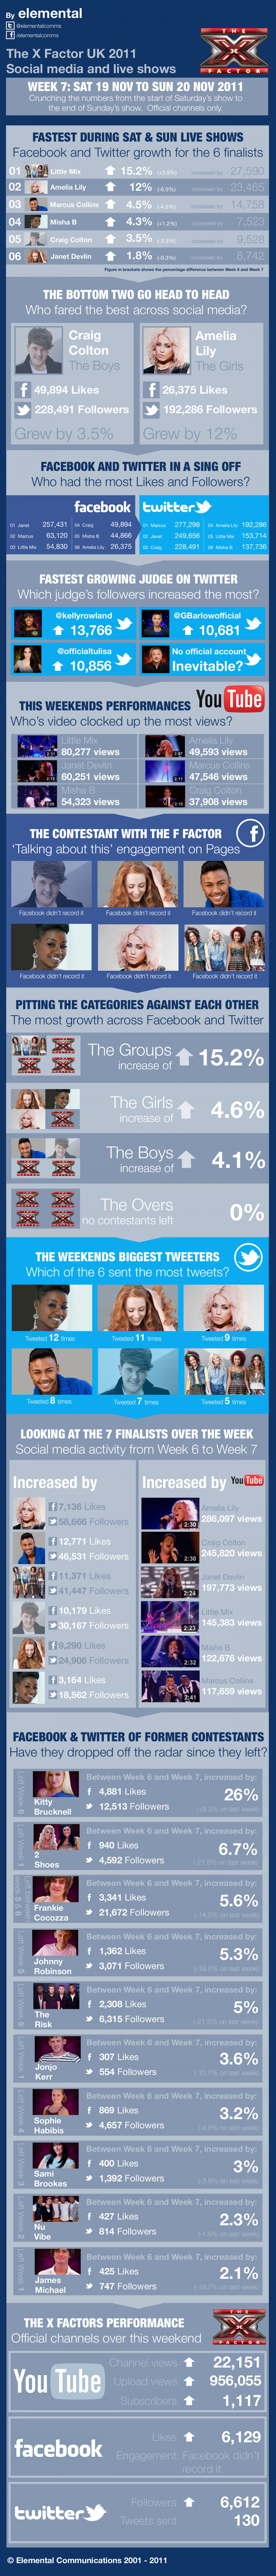 The X Factor social media and the live shows infographic for Week 7 Infographic